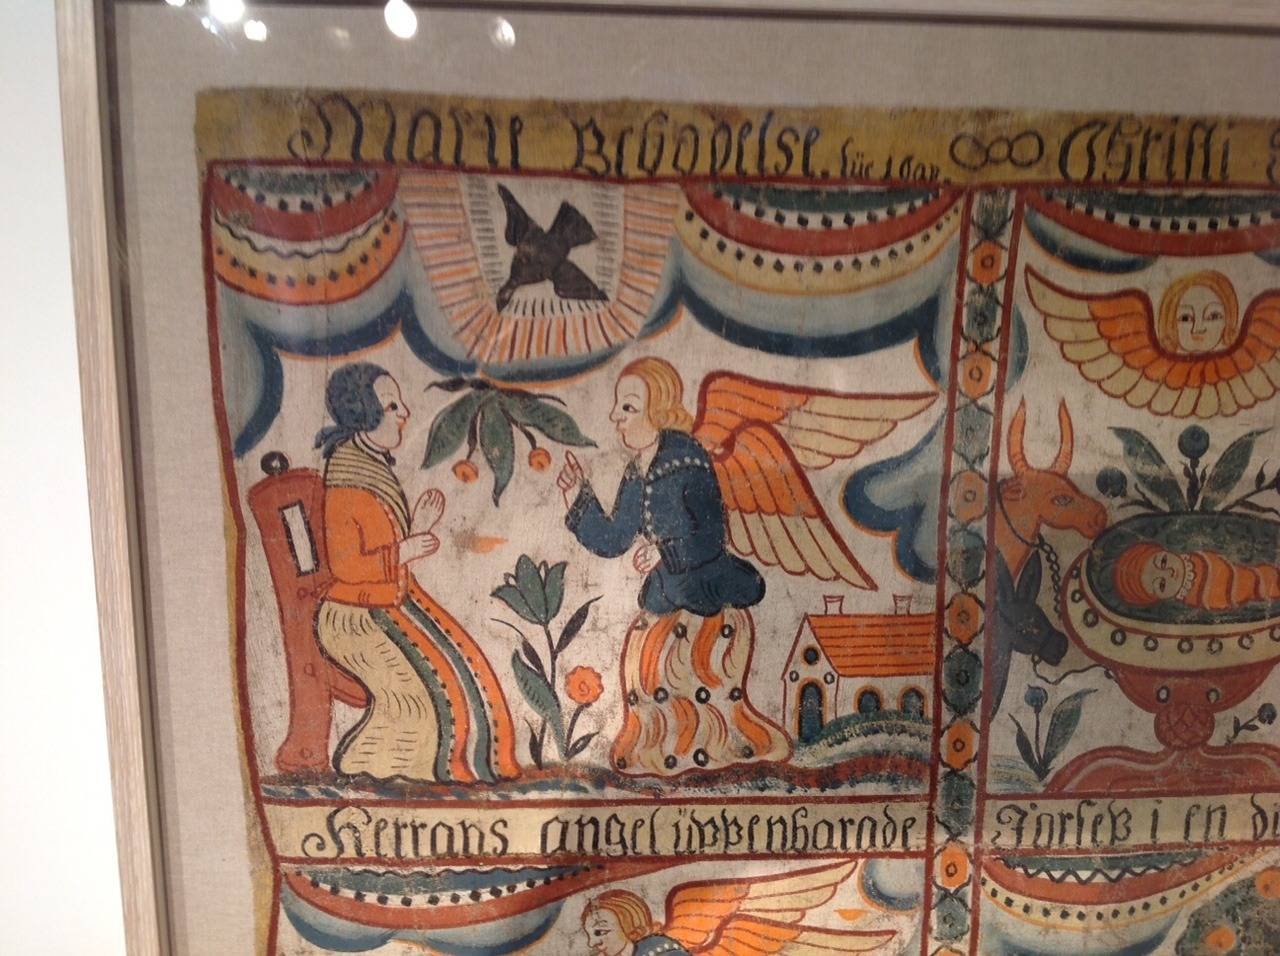 Outstanding early 19th century Swedish Folk Art mural (or bonad; also referred to as a kurbitz or kurbits) depicting the Annunciation, the Nativity, the Proclamation and Flight into Egypt, all the figures dressed in 18th century Swedish costume and